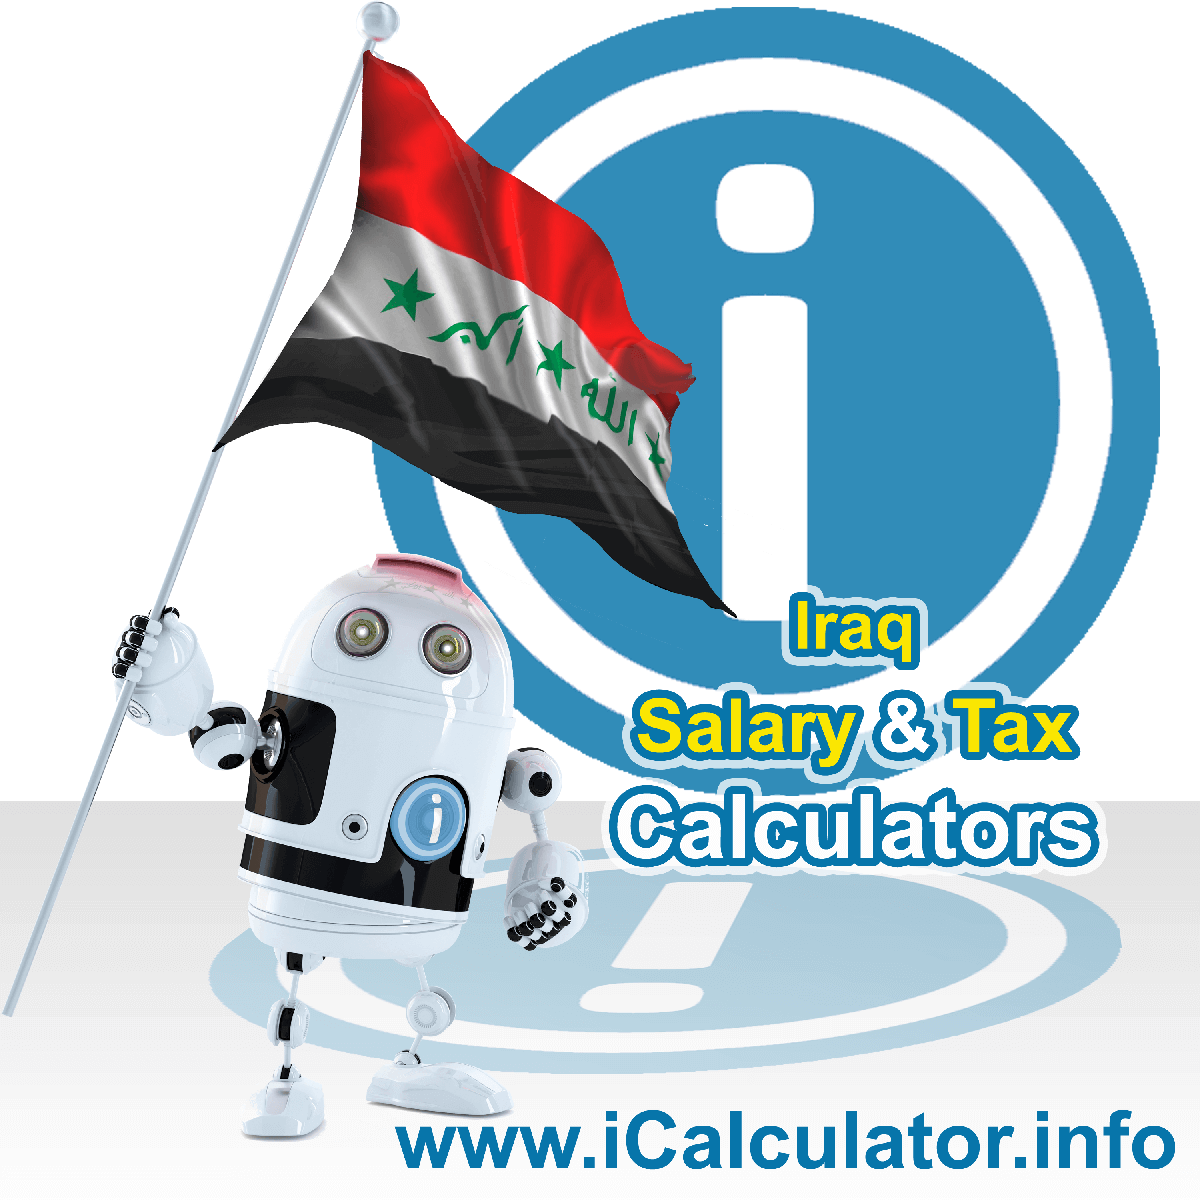 Iraq Tax Calculator. This image shows the Iraq flag and information relating to the tax formula for the Iraq Salary Calculator